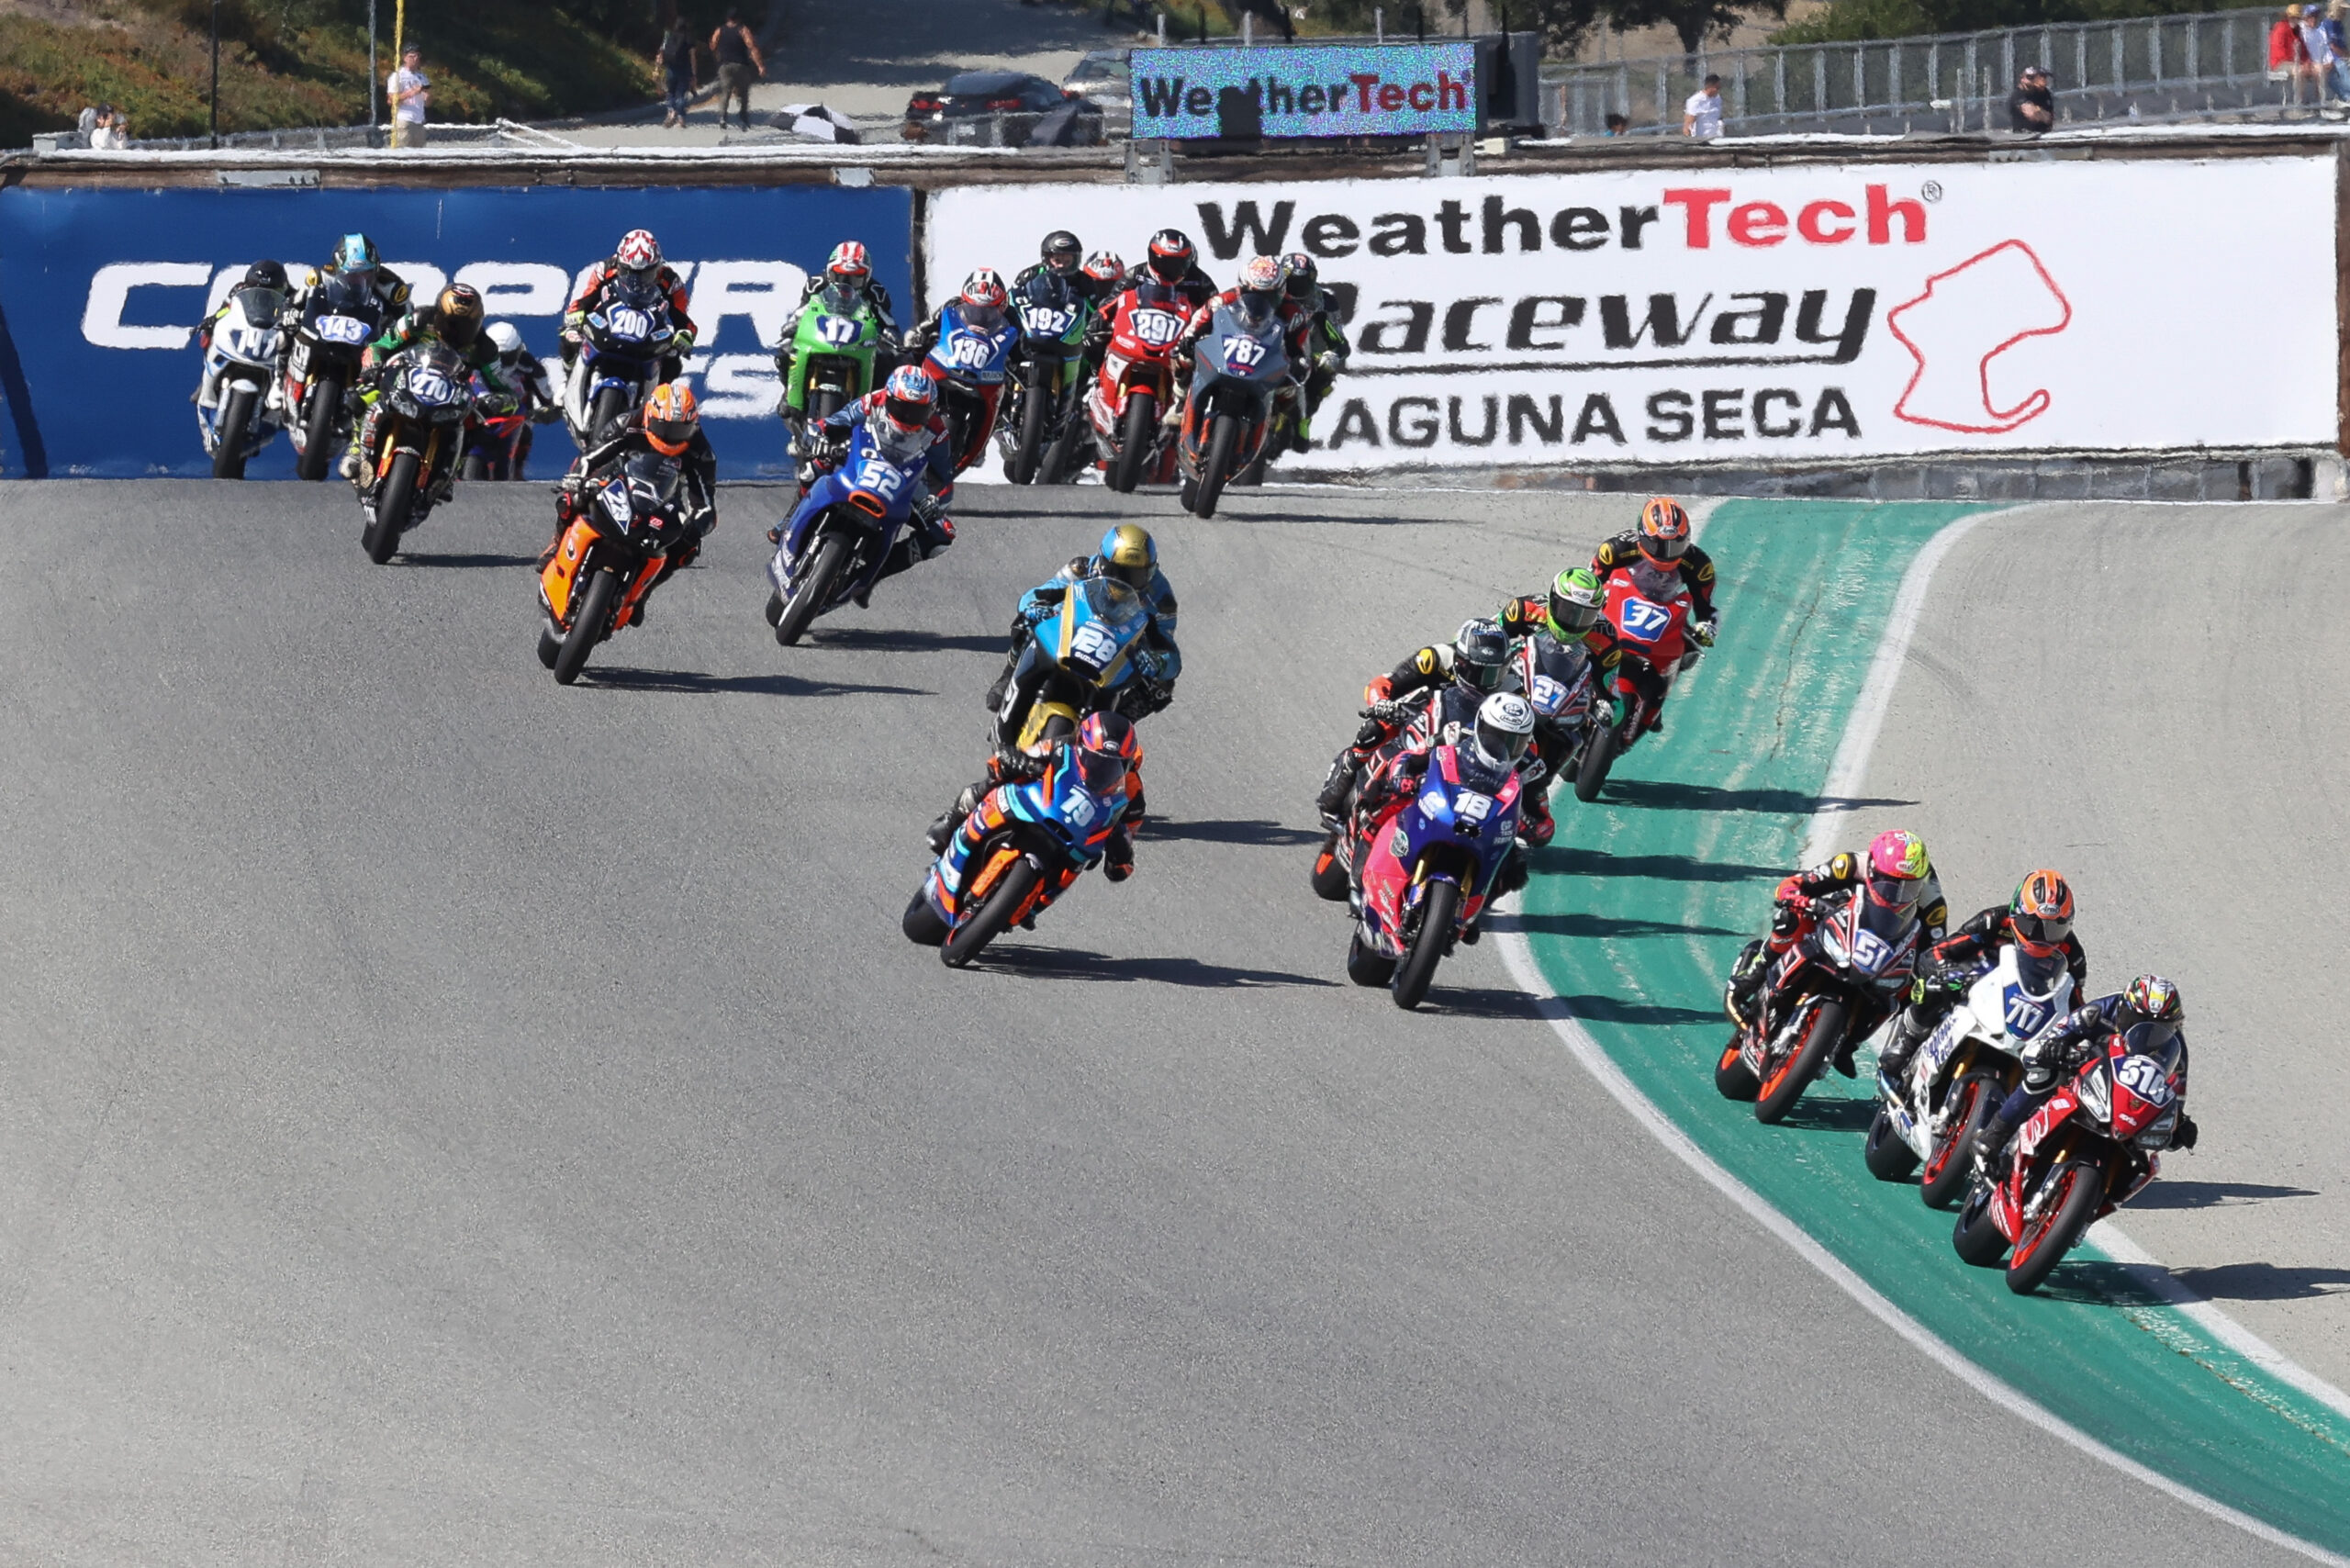 Kelly Over Escalante, Scott Over Gloddy On Day One At Weathertech Raceway